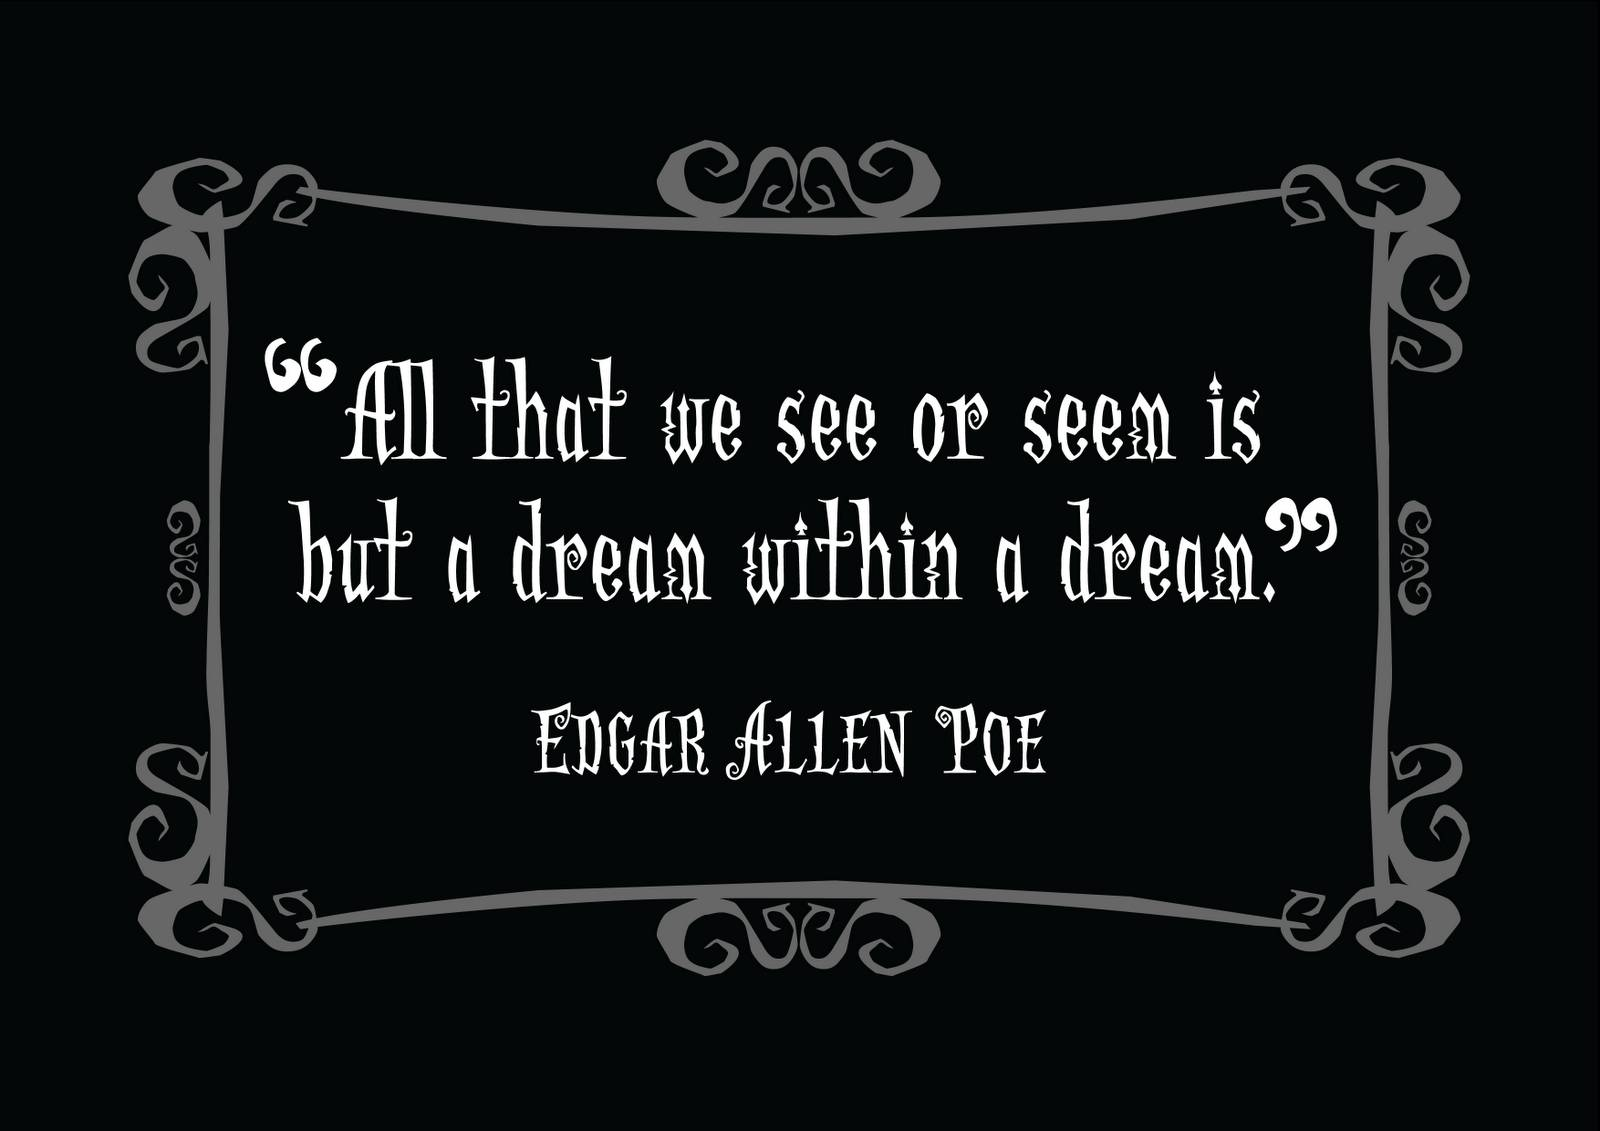 edgar allan poe afari edgar allan poe quotes 2 a picture of edgar allan poe along a